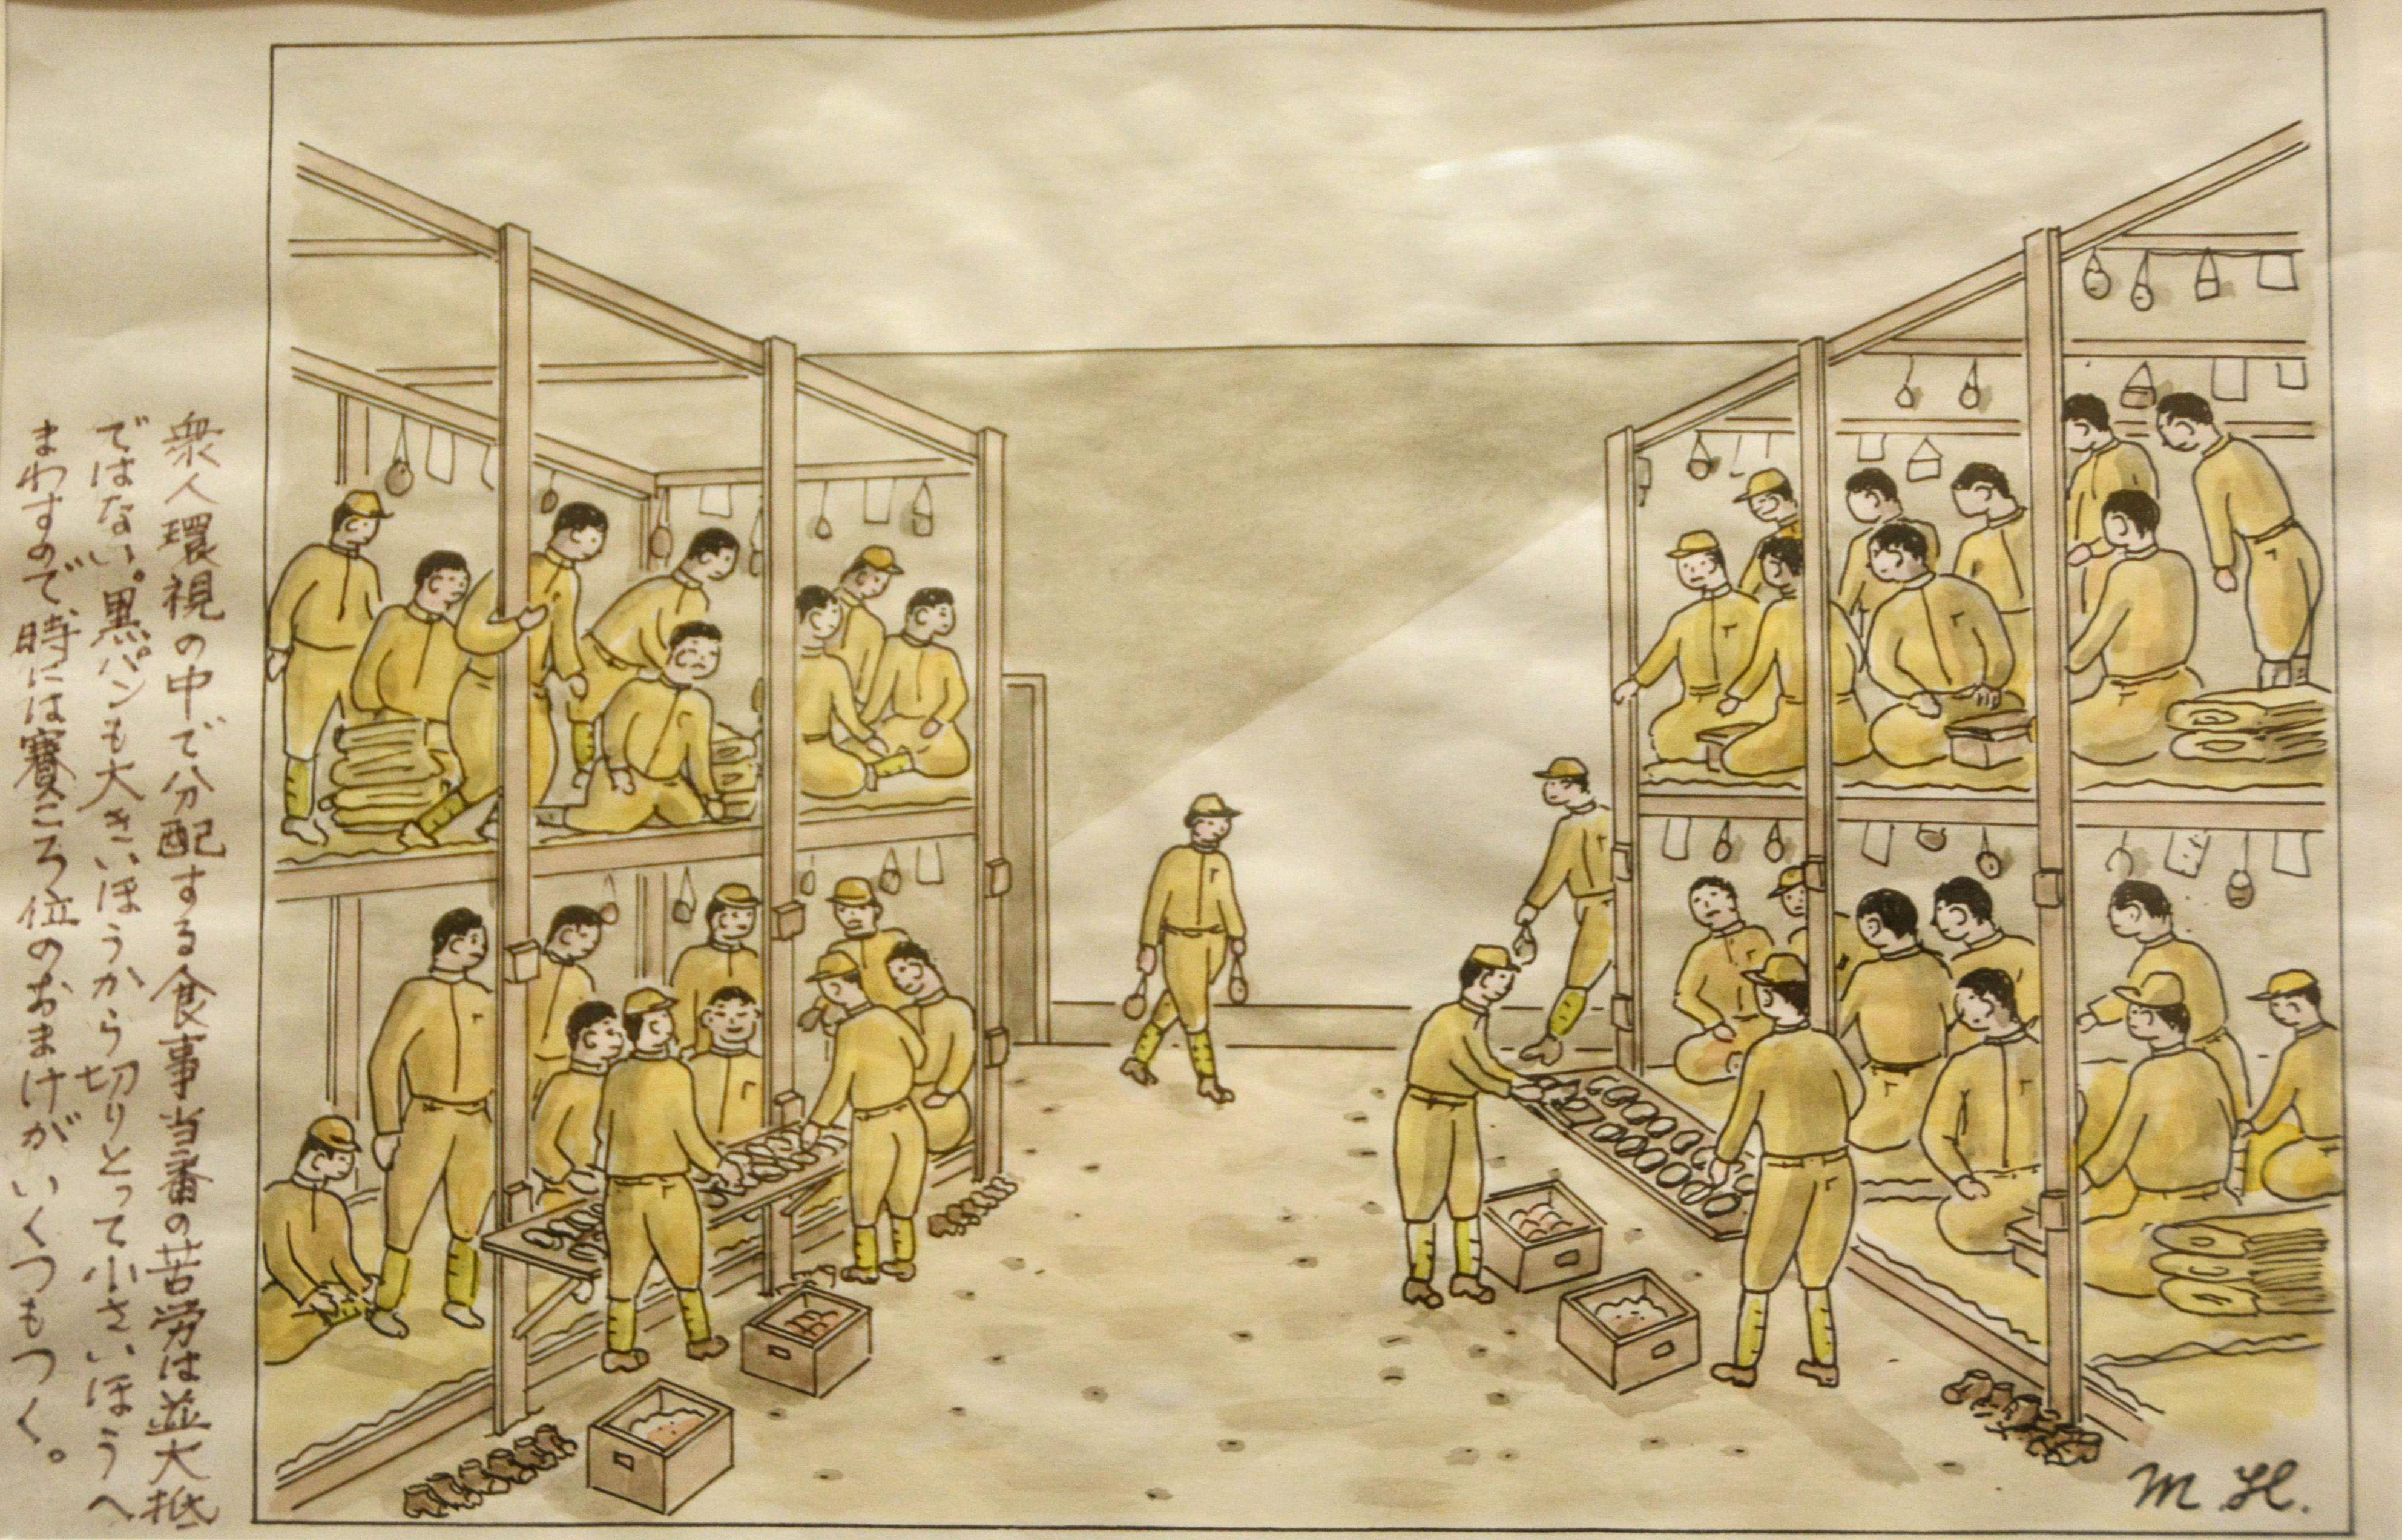 A drawing made by a prisoner of war detained in the Soviet Union is exhibited Tuesday at the Maizuru Repatriation Memorial Museum in the city of Maizuru, Kyoto Prefecture. | KYODO